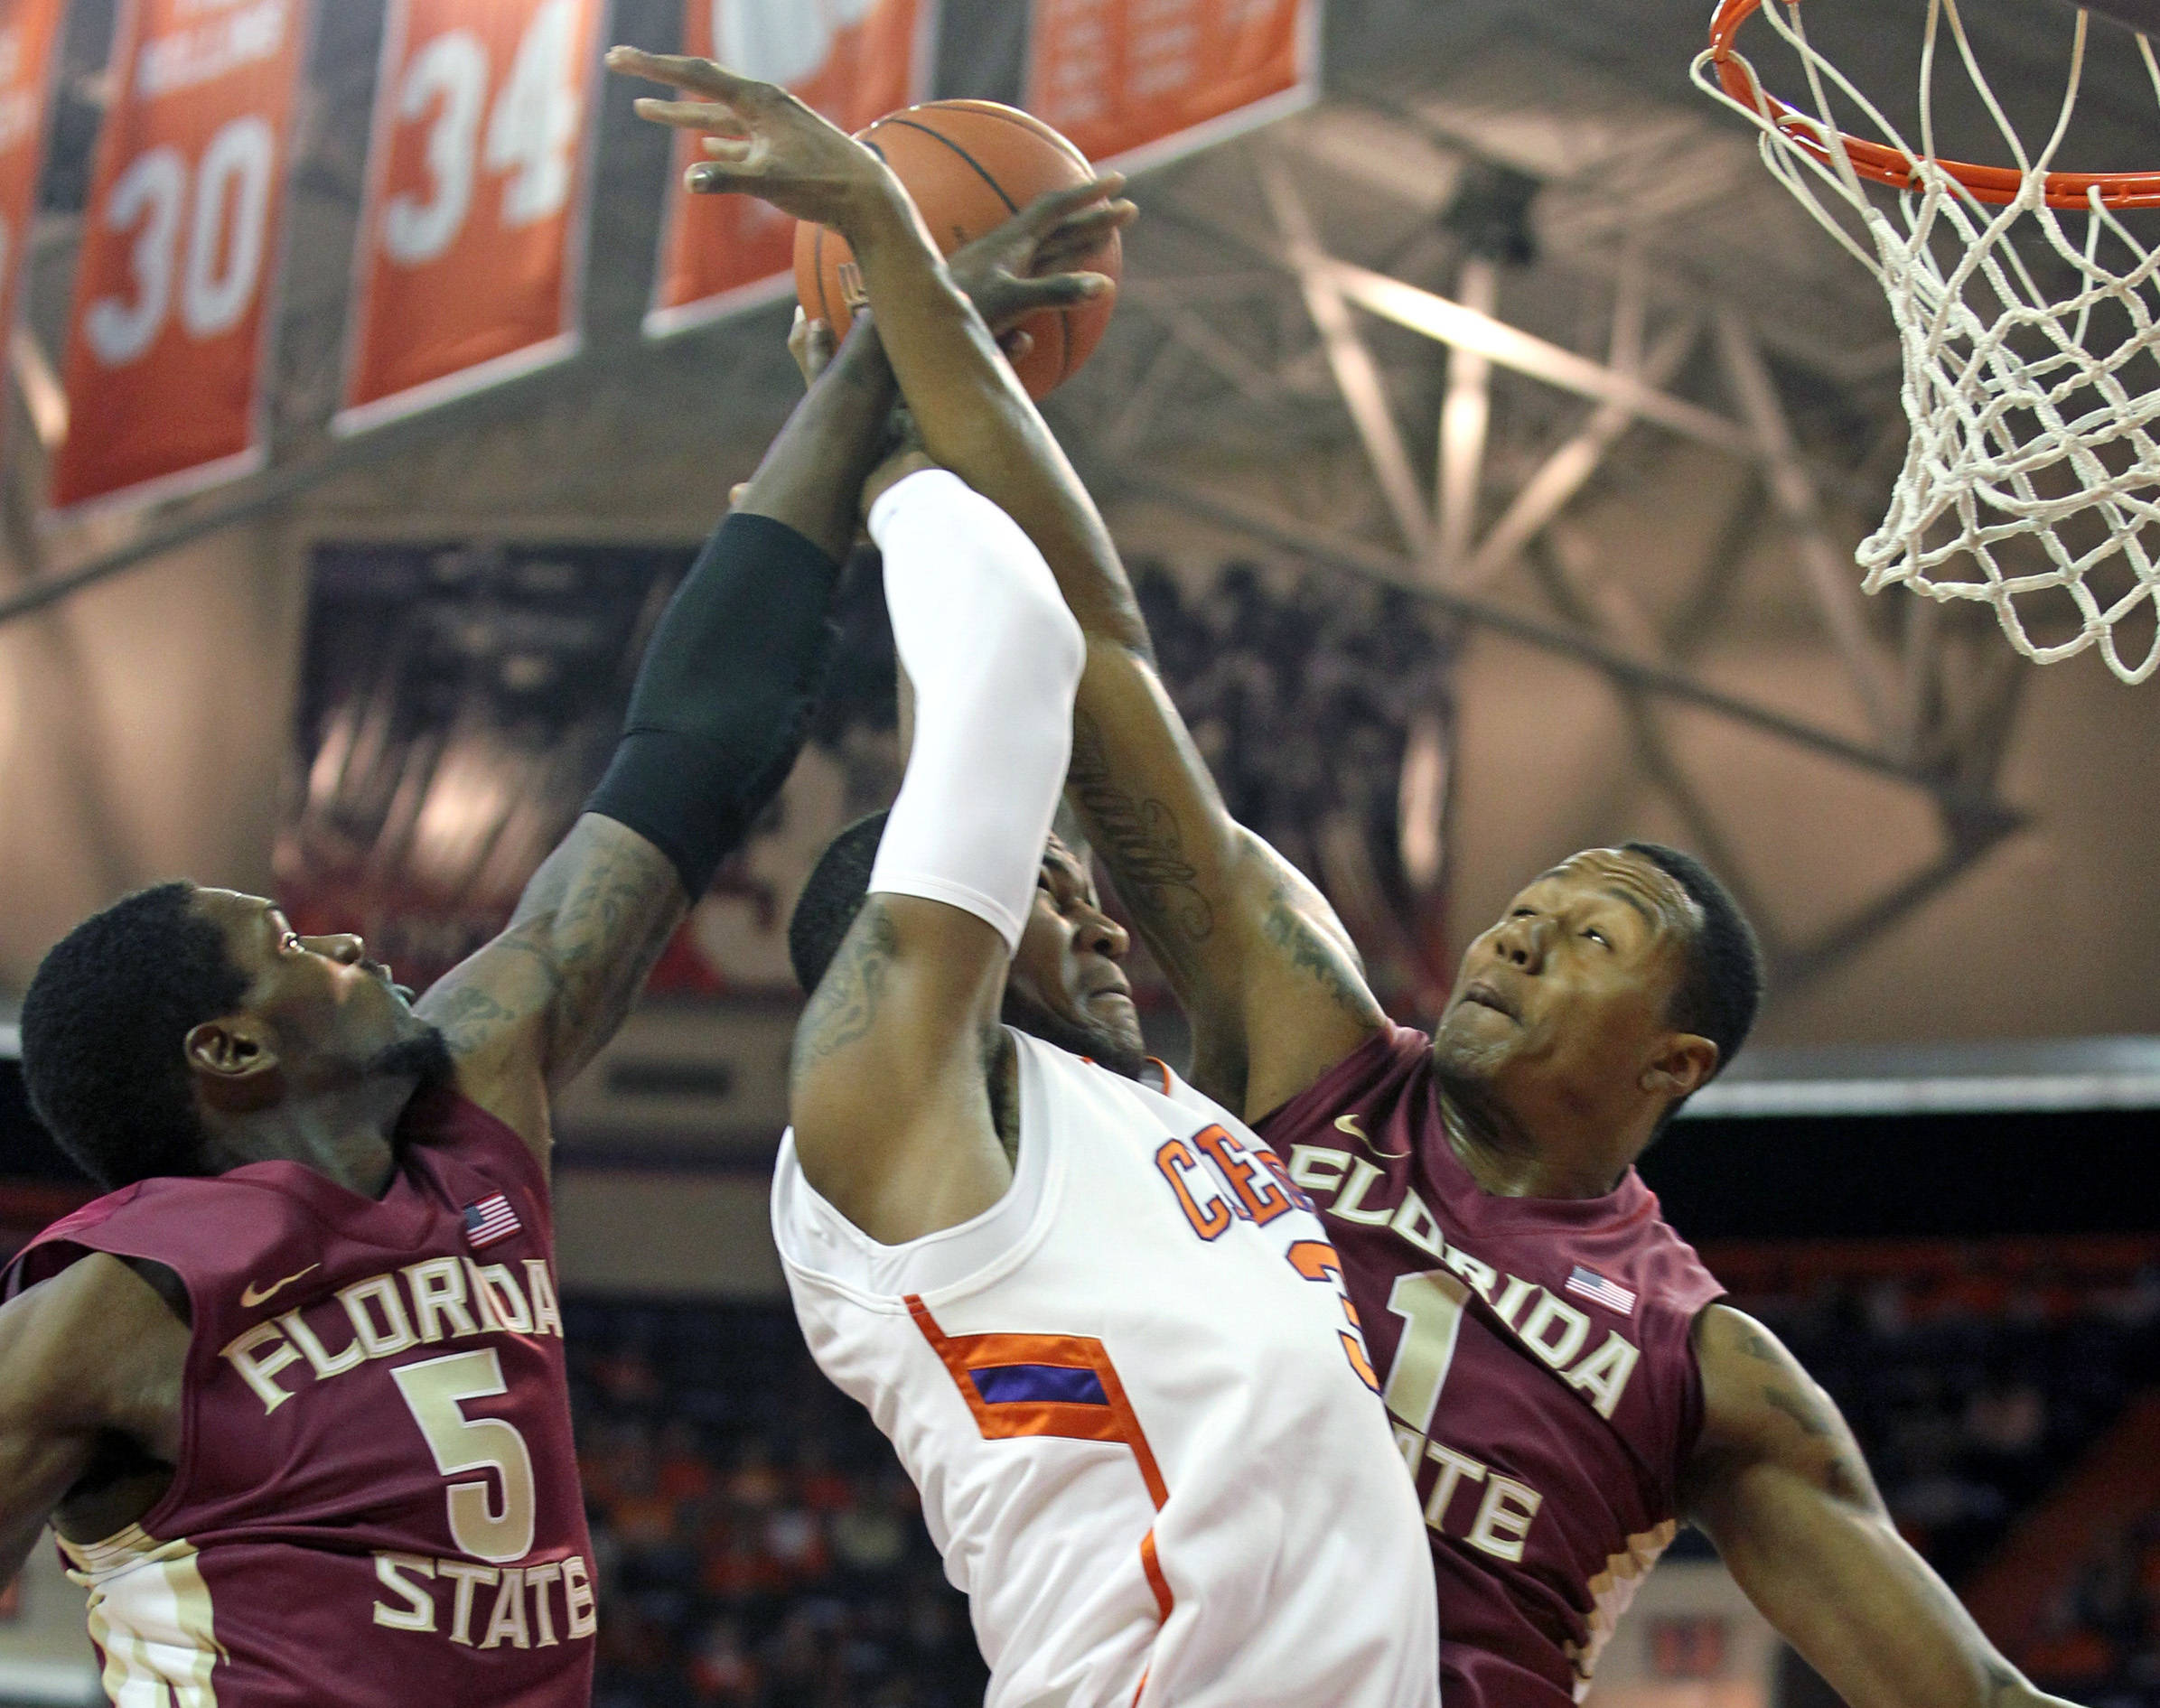 Clemson's Devin Booker, center, drives to the basket between Florida State's Bernard James, left, and Xavier Gibson during the first half of an NCAA college basketball game on Saturday. (AP Photo/Anderson Independent-Mail, Mark Crammer)